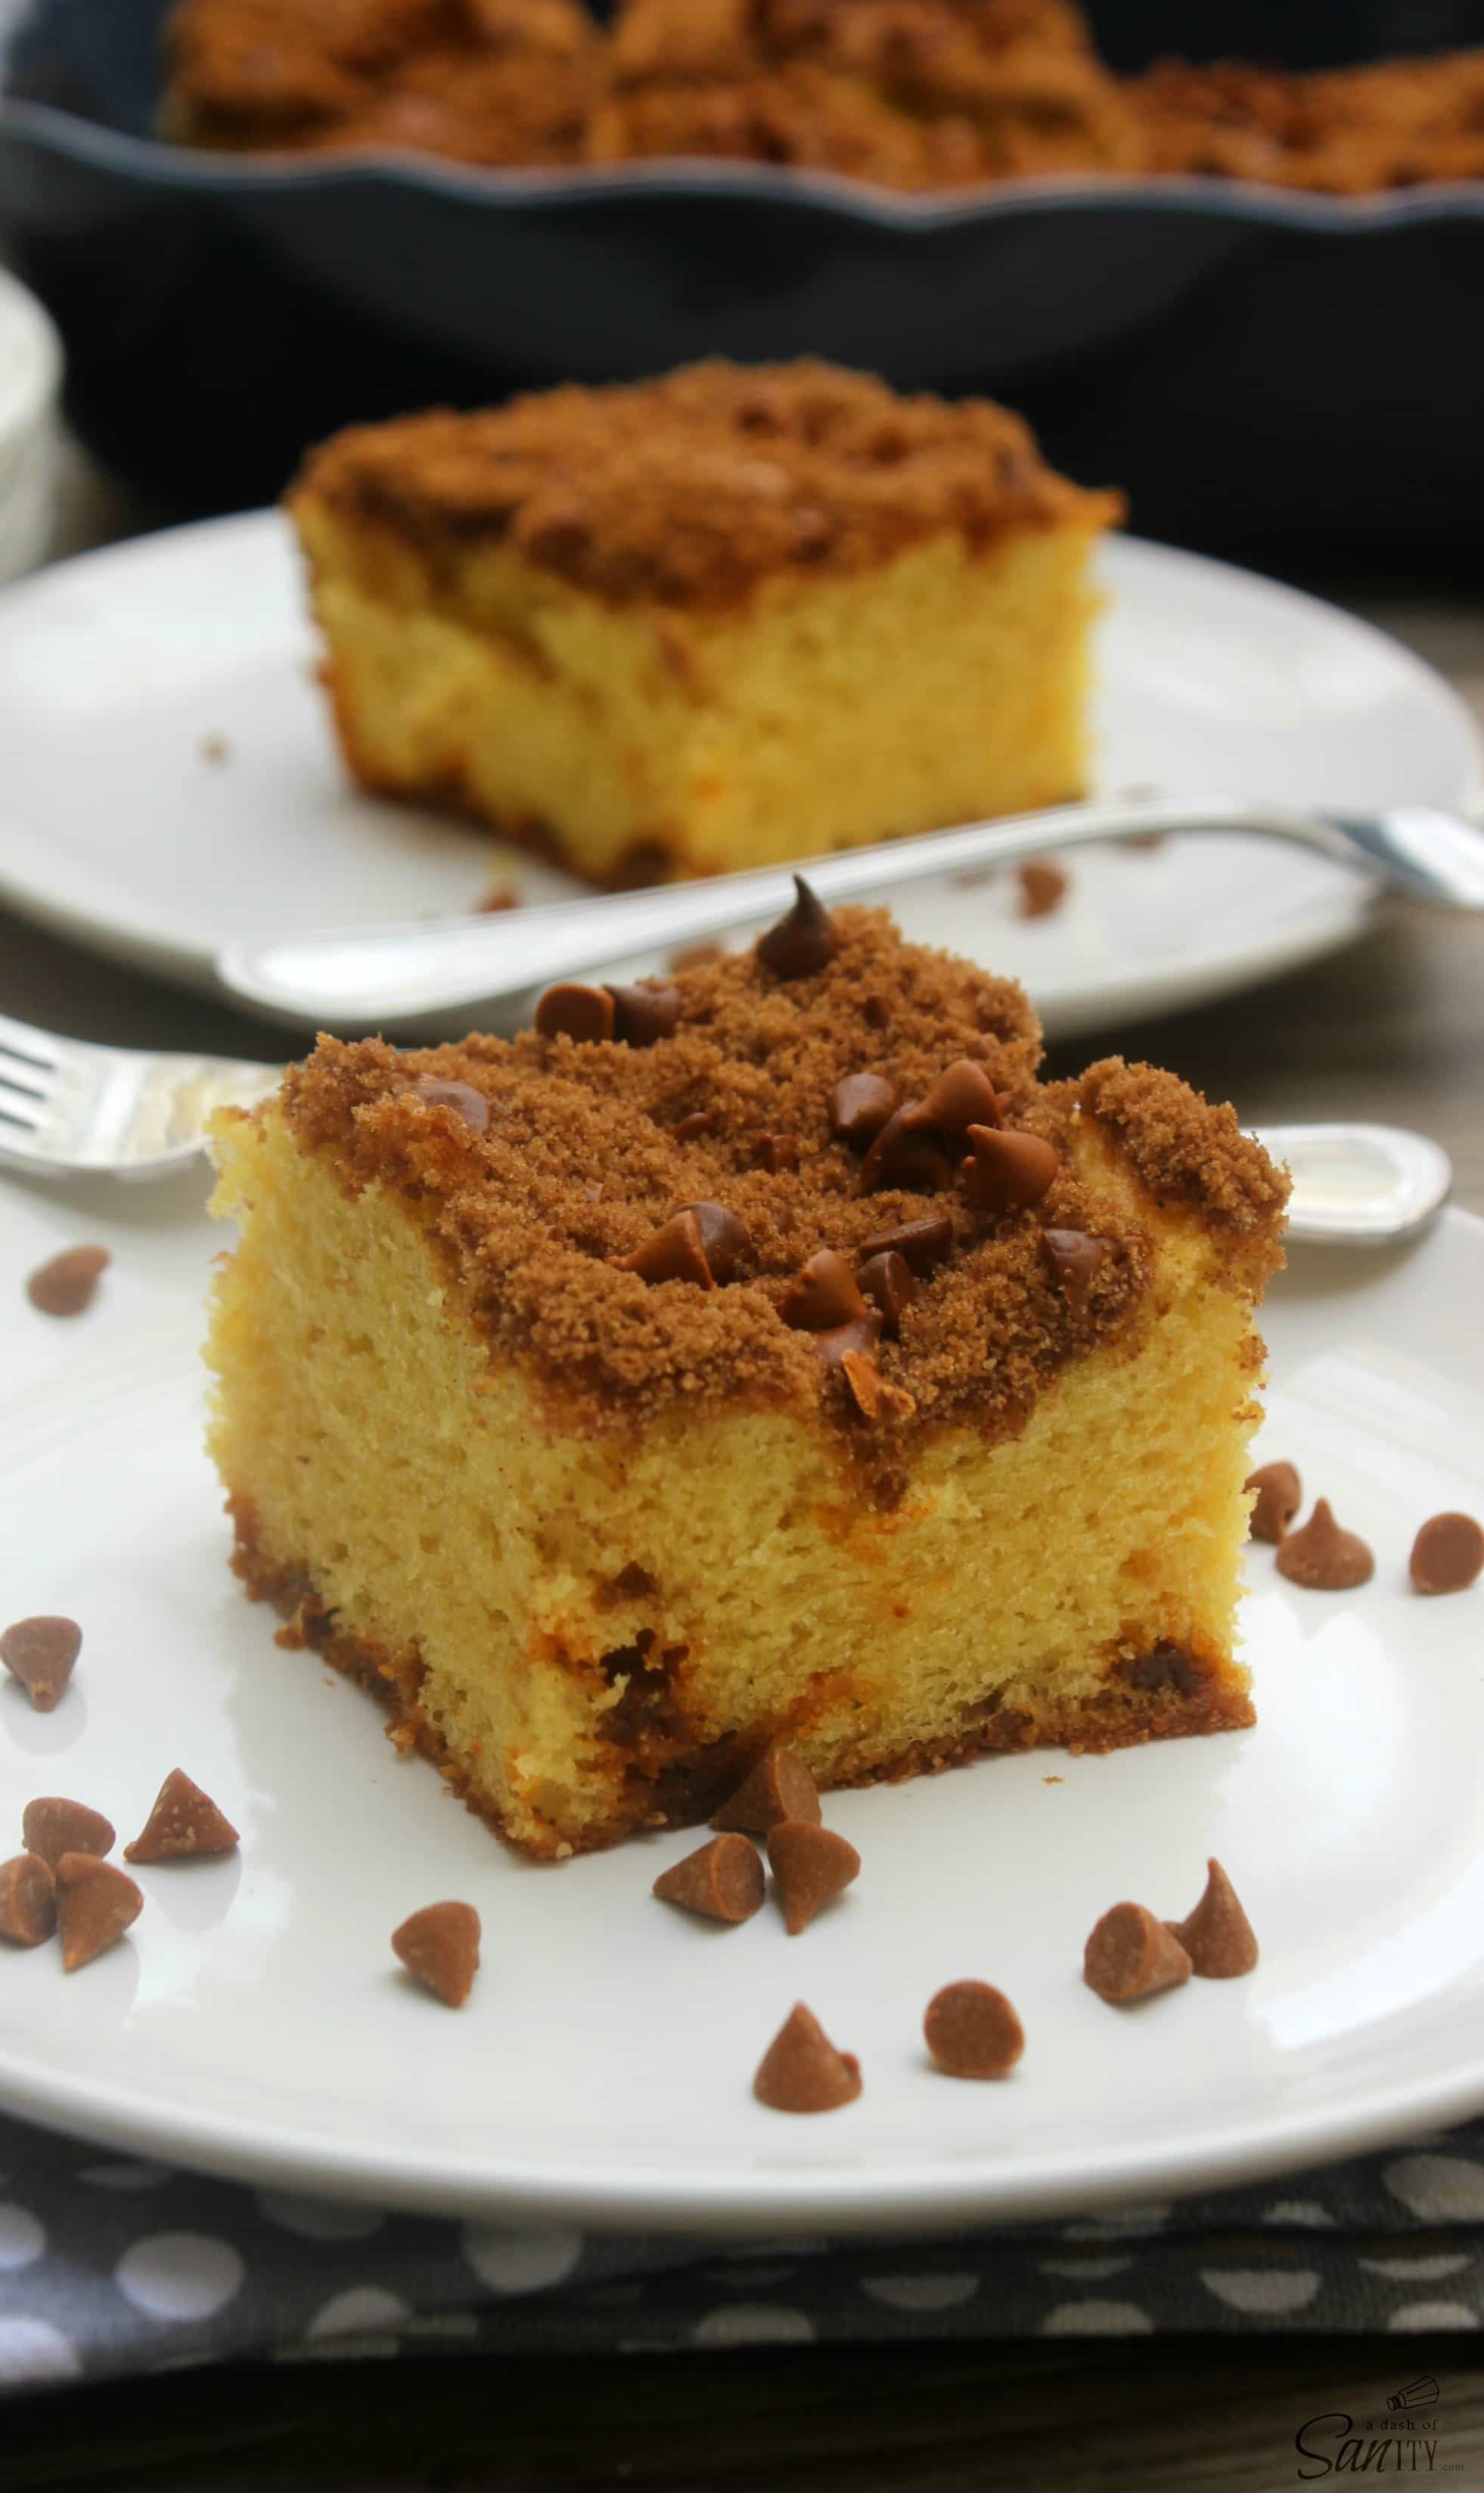 This Cinnamon Chip Coffee Cake is a classic delicious coffee cake with a cinnamon chip crumb topping. It makes a great morning treat or an afternoon snack.